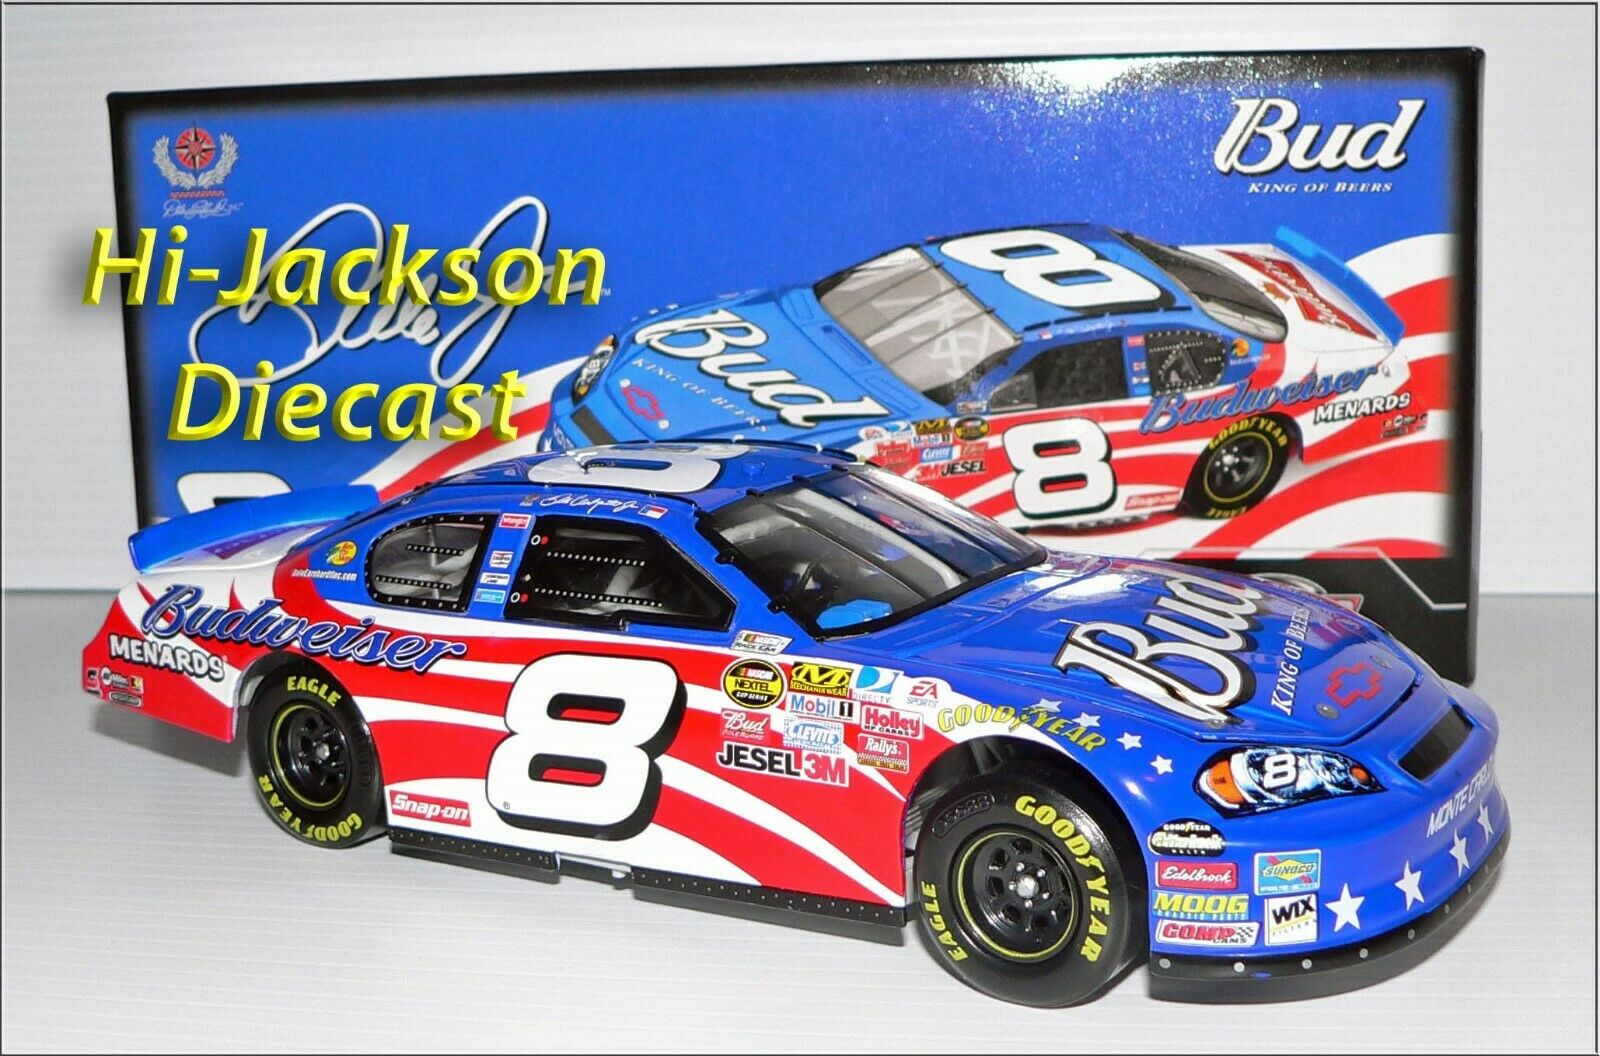 DALE EARNHARDT JR 2007 STARS AND STRIPES NASCAR DIECAST DIECAST DIECAST RACE CAR 1 24 7b5590